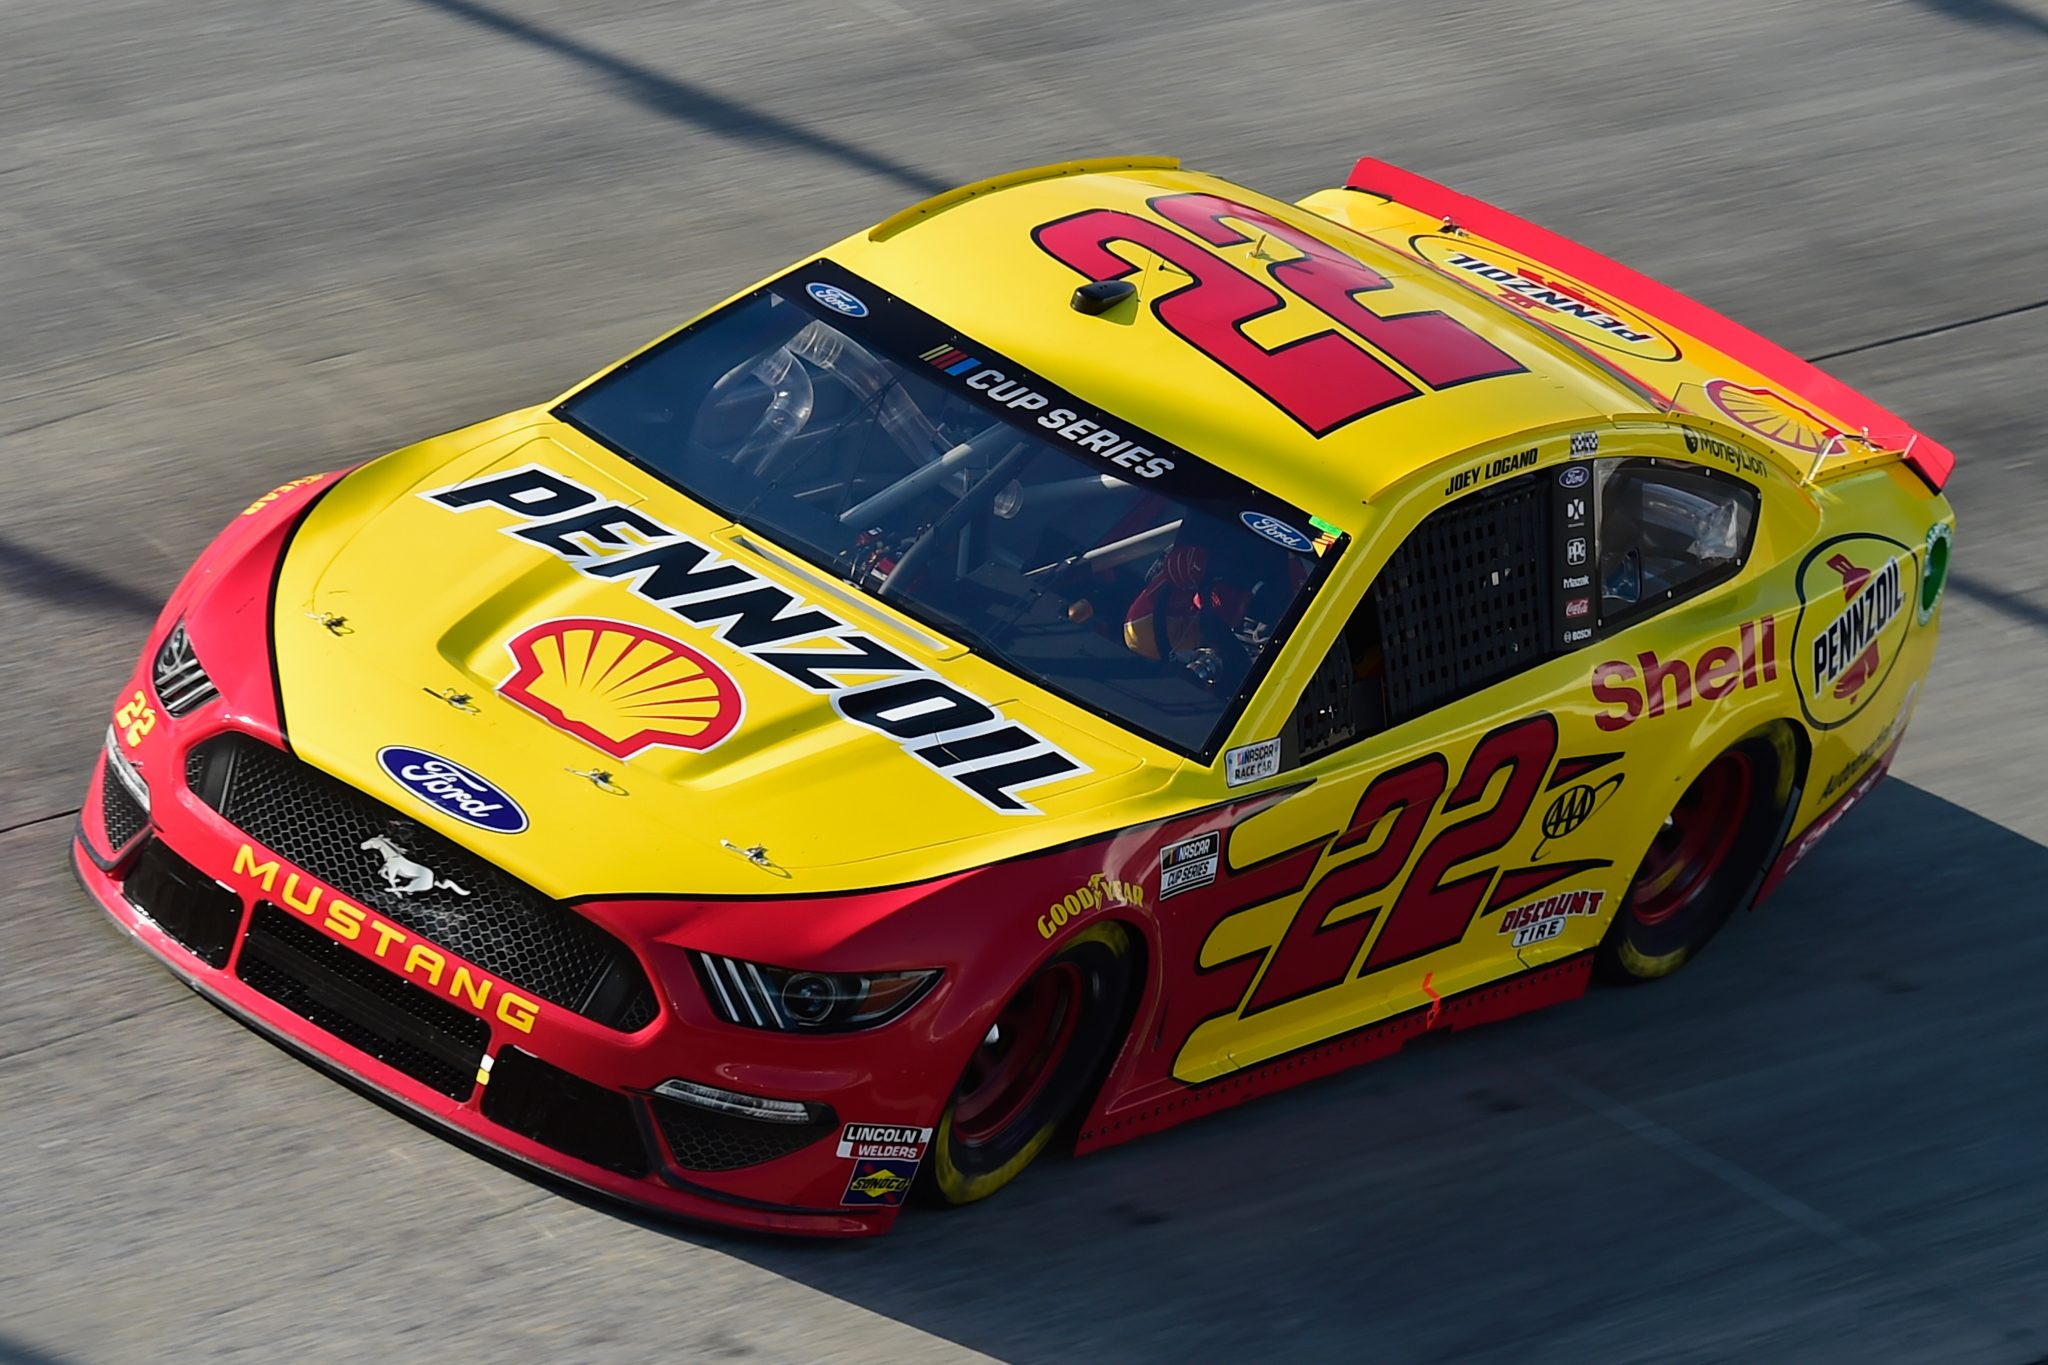 DOVER, DELAWARE - AUGUST 23: Joey Logano, driver of the #22 Shell Pennzoil Ford, drives during the NASCAR Cup Series Drydene 311 at Dover International Speedway on August 23, 2020 in Dover, Delaware. (Photo by Jared C. Tilton/Getty Images) | Getty Images